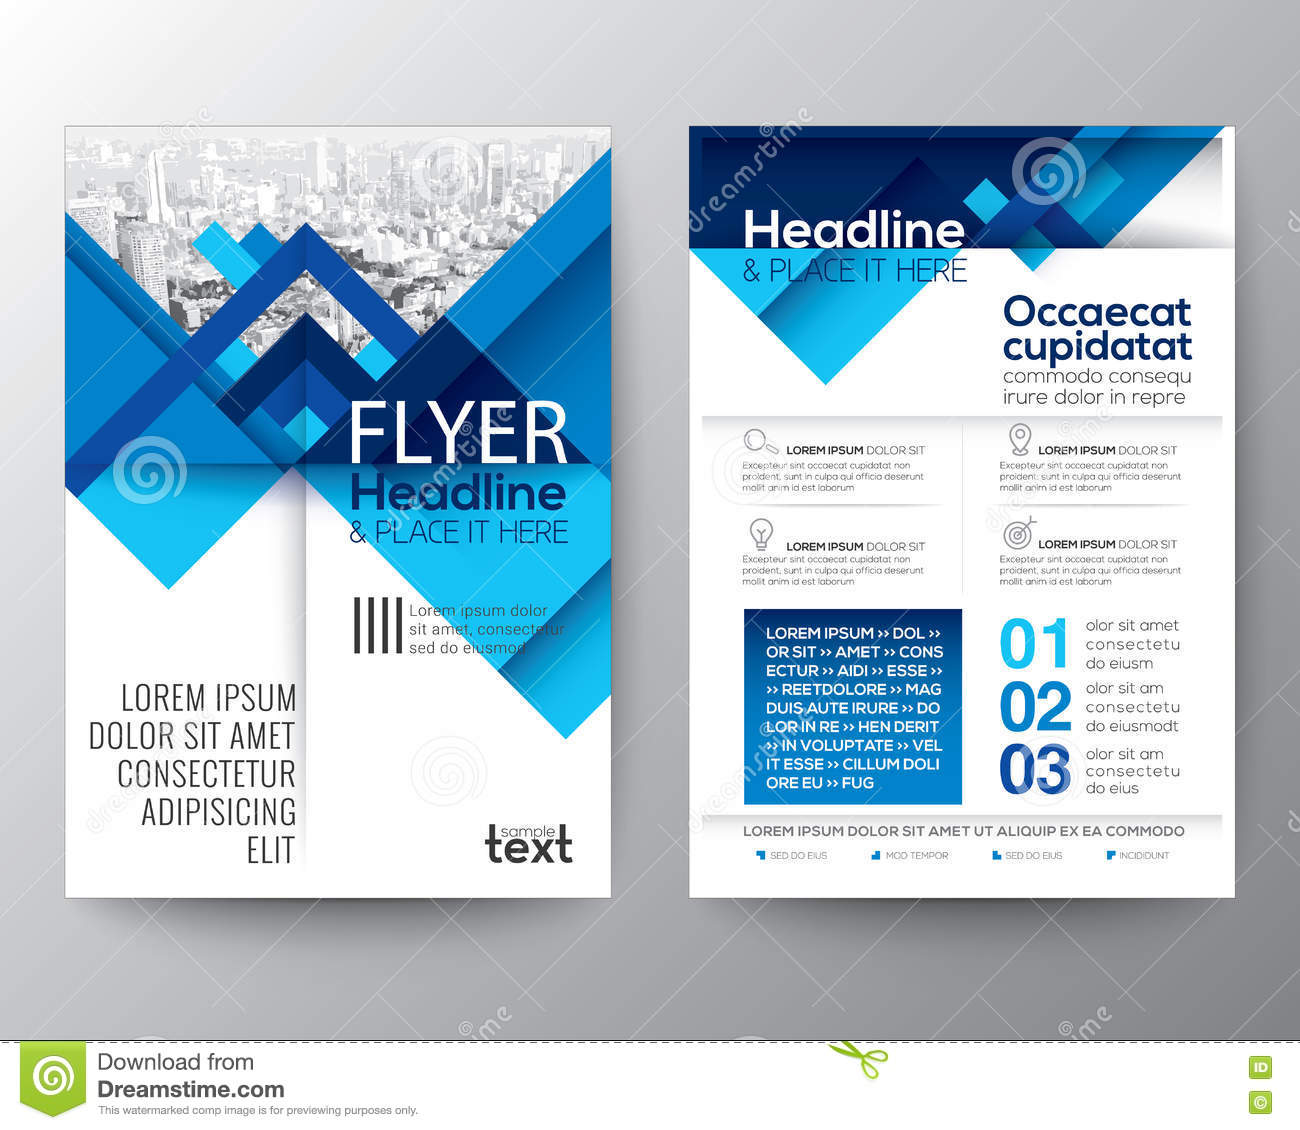 Poster design free template - Abstract Geometric Background For Poster Brochure Flyer Design Layout Royalty Free Stock Photos